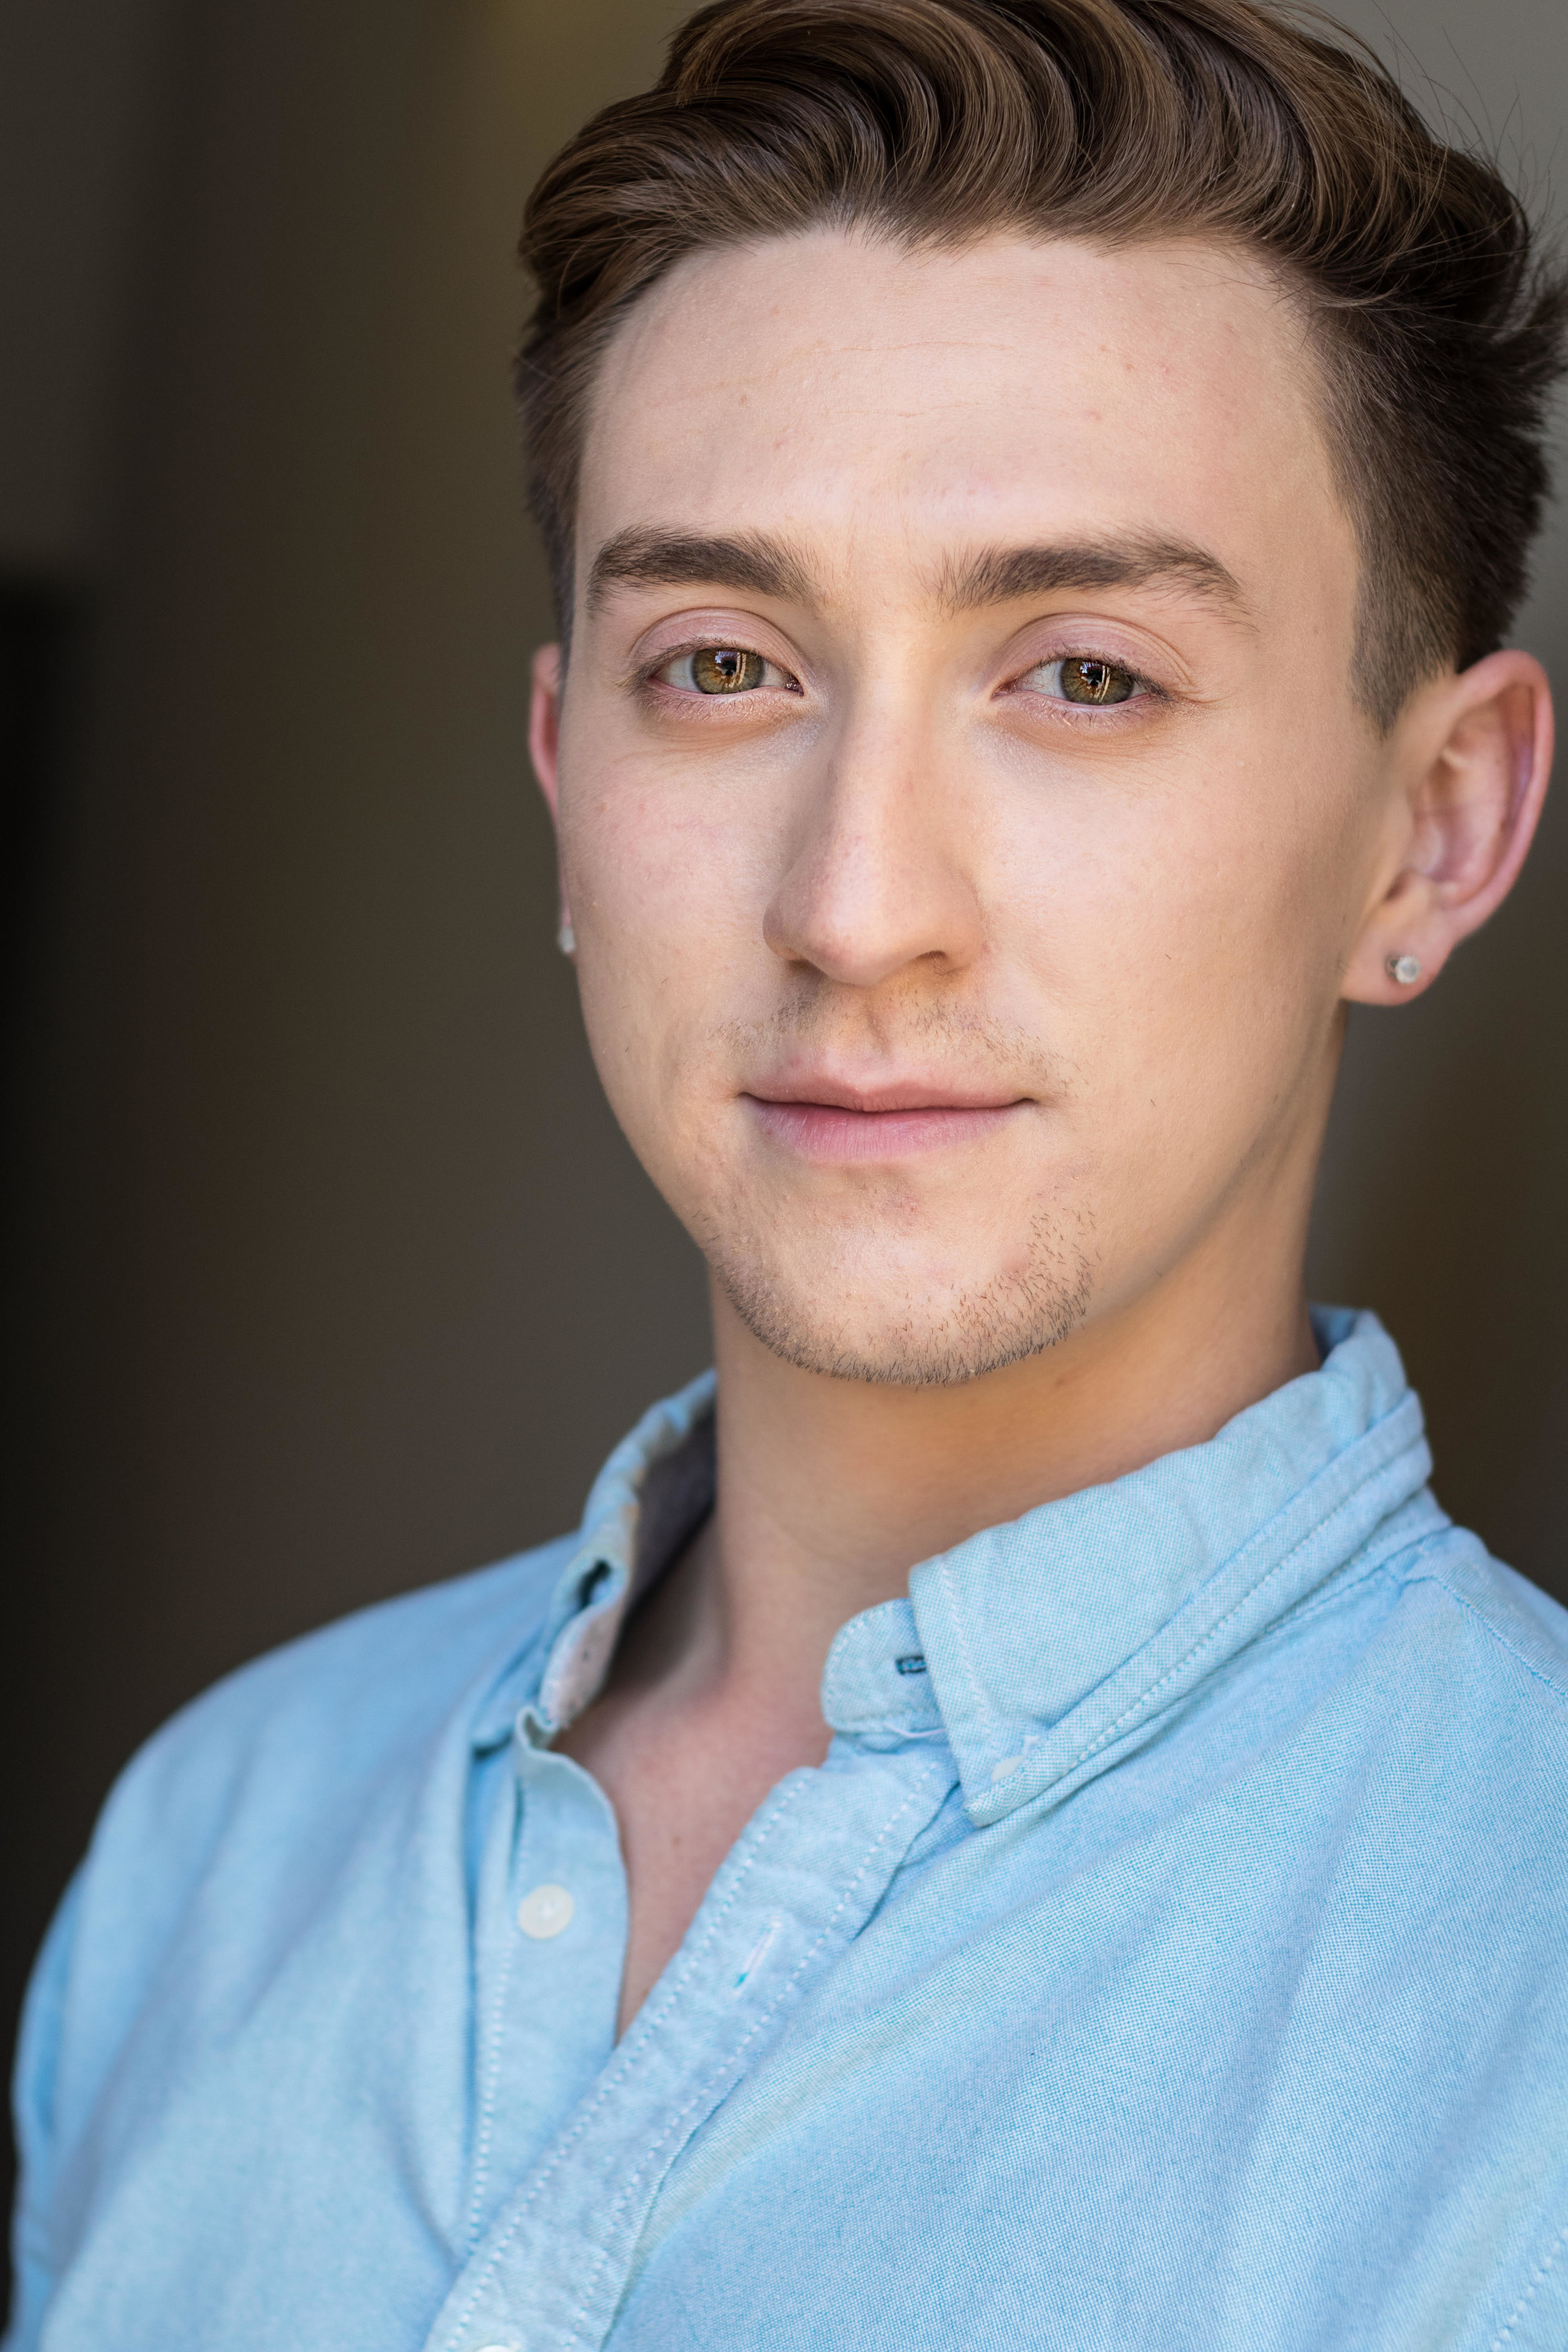 "Patrick Wallace has a BFA in Drama from the University of Southern California and won the Jack Nicholson Award for his achievements there. ""Matt"" is centered around his character's story, and we can't wait to share his debut in it with you."